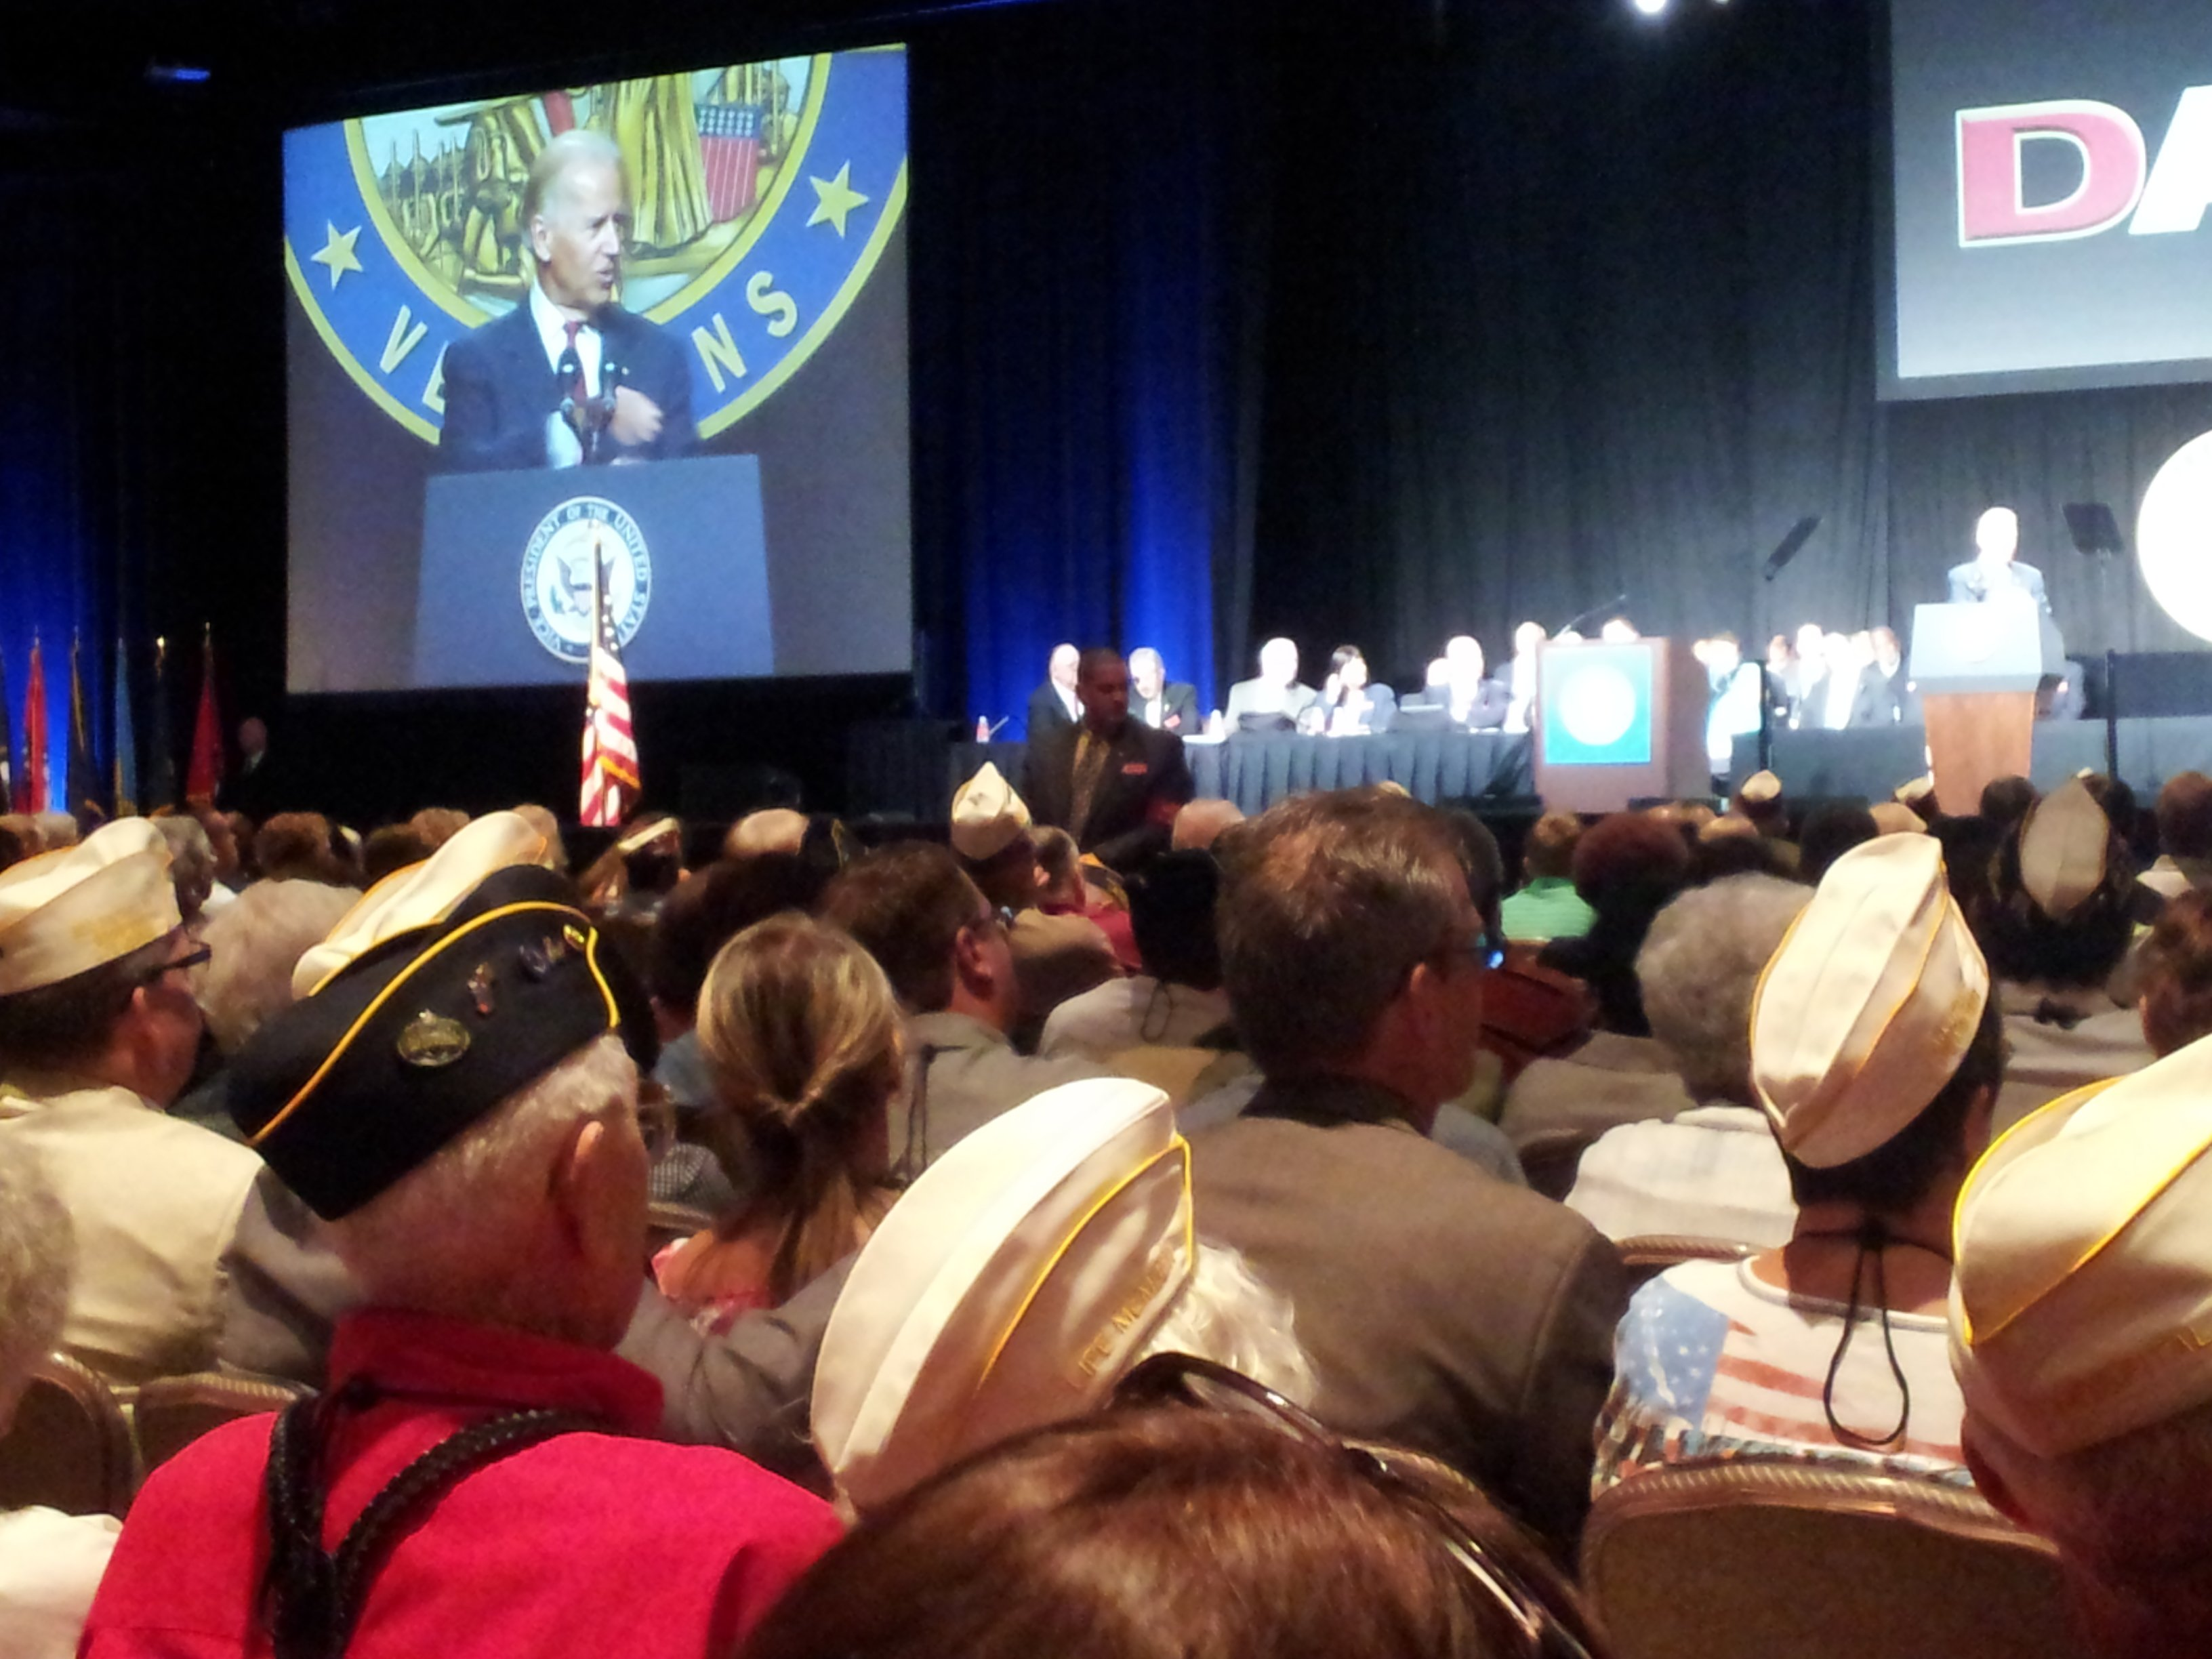 Vice President Joe Biden praised the sacrifices military members have made (Christian Cazares/FOX5)